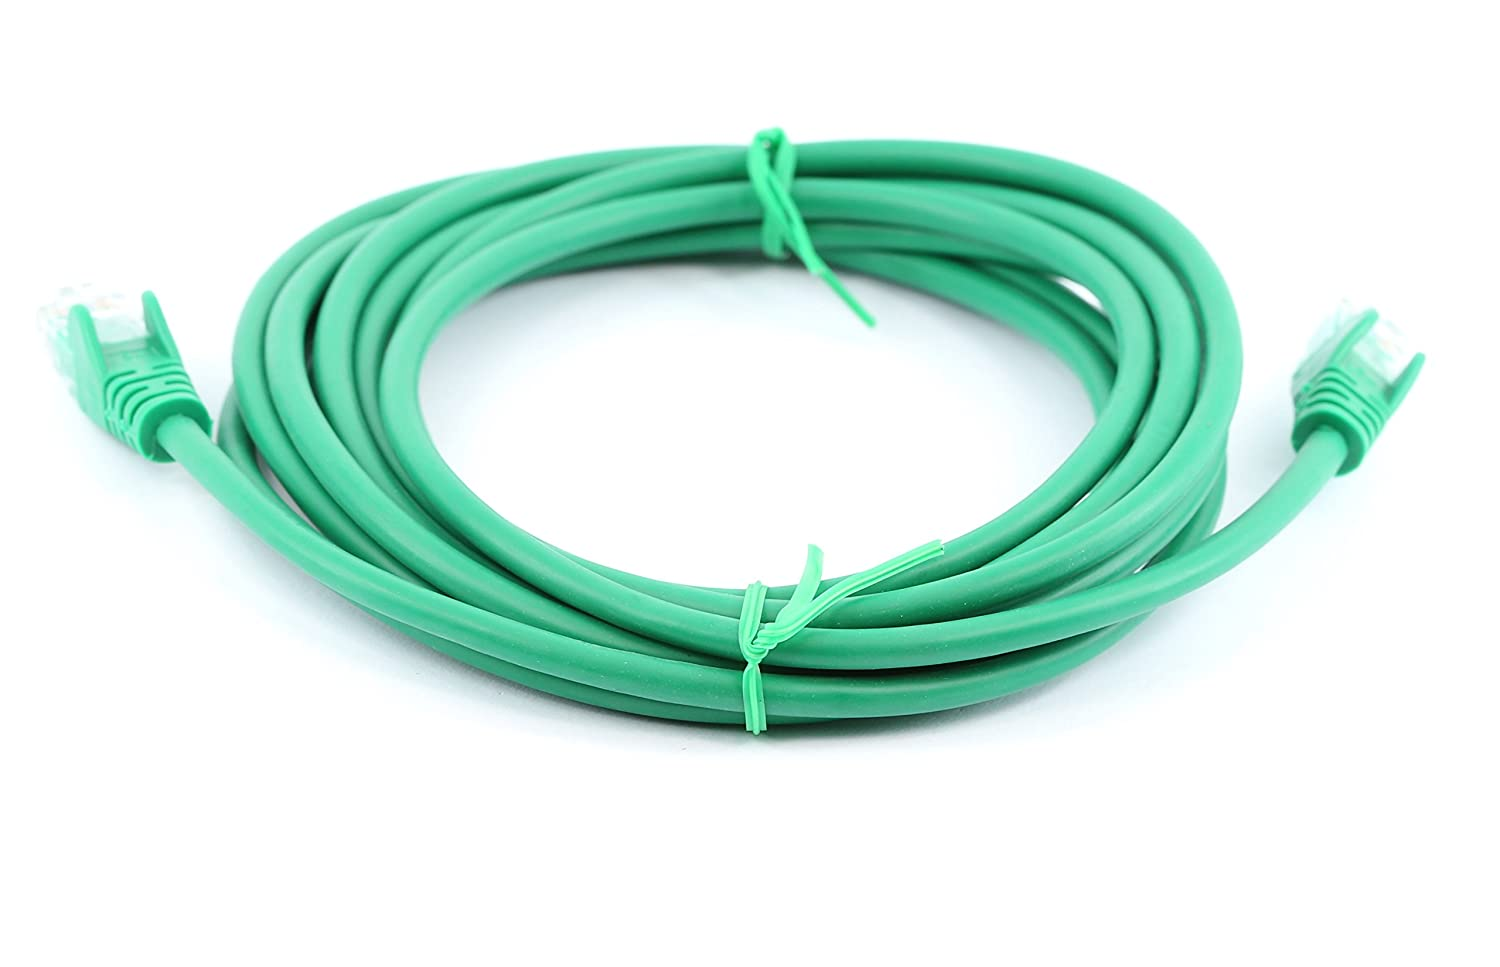 4ft 11in, Green rhinocables Cat 5e Cat5e Ethernet RJ45 High Speed Network Cable Internet Fast Speed Lead